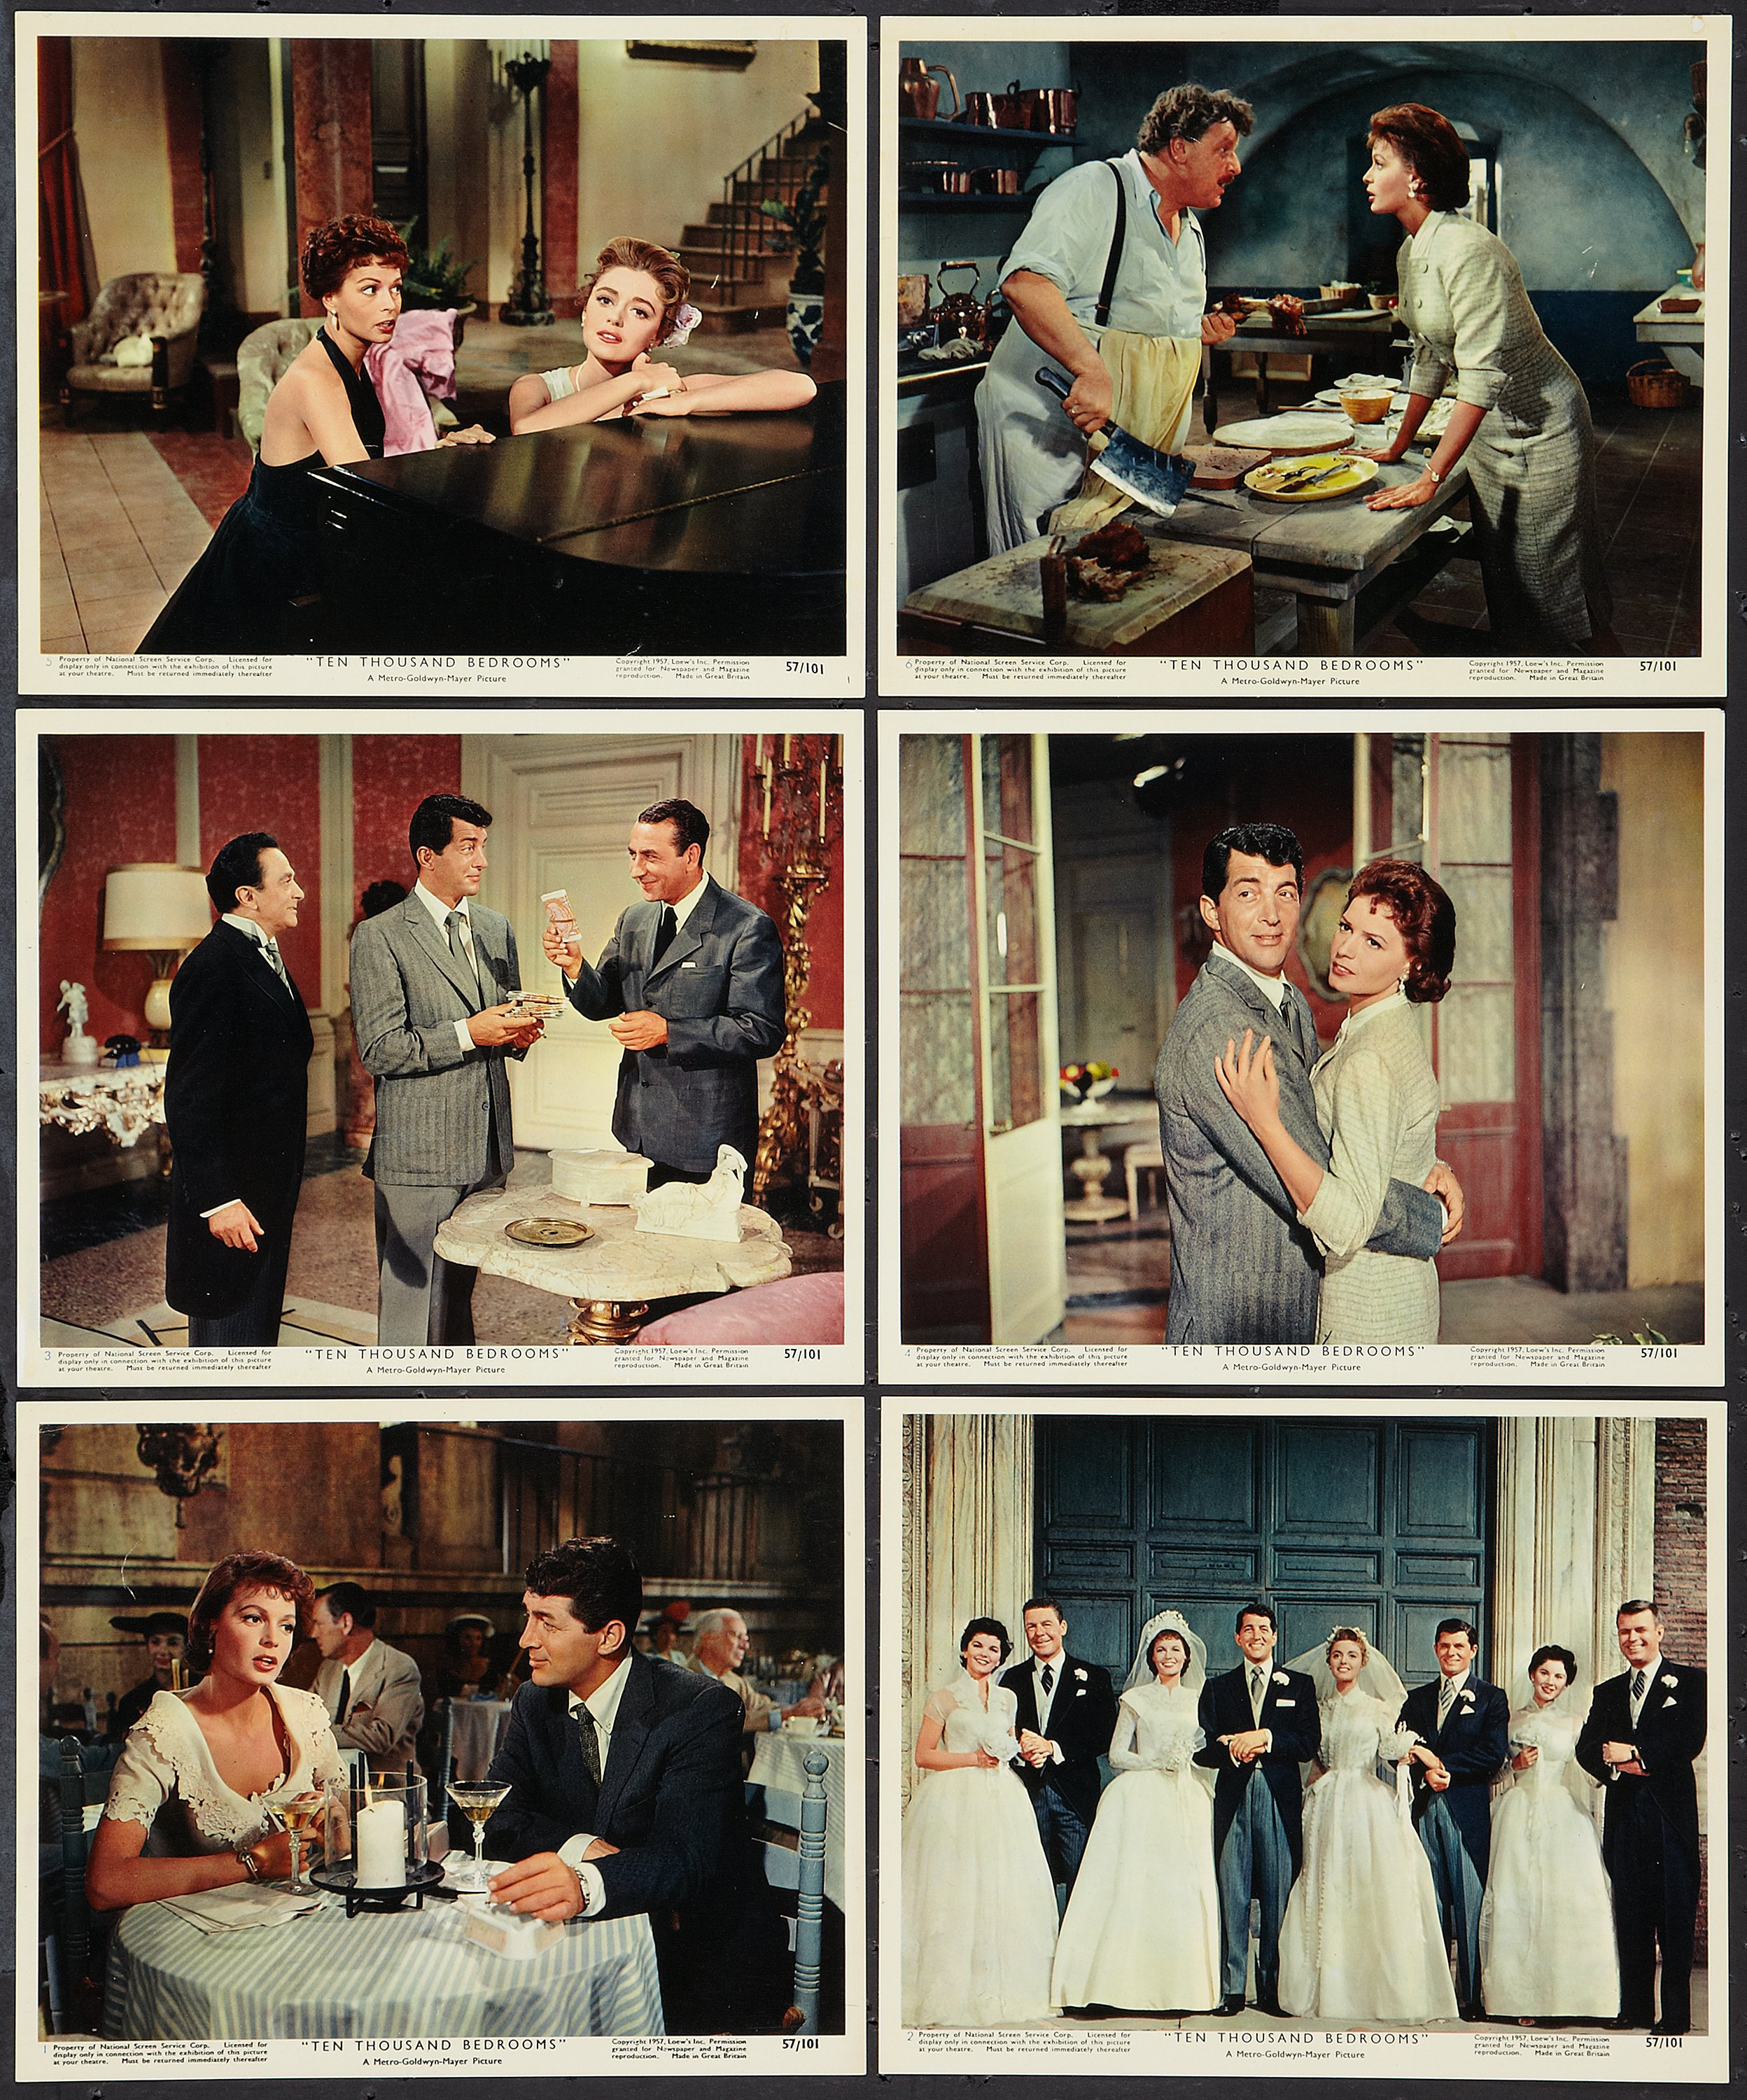 Ten Thousand Bedrooms Mgm 1957 Color Photo Set Of 12 8 X Lot 51488 Heritage Auctions